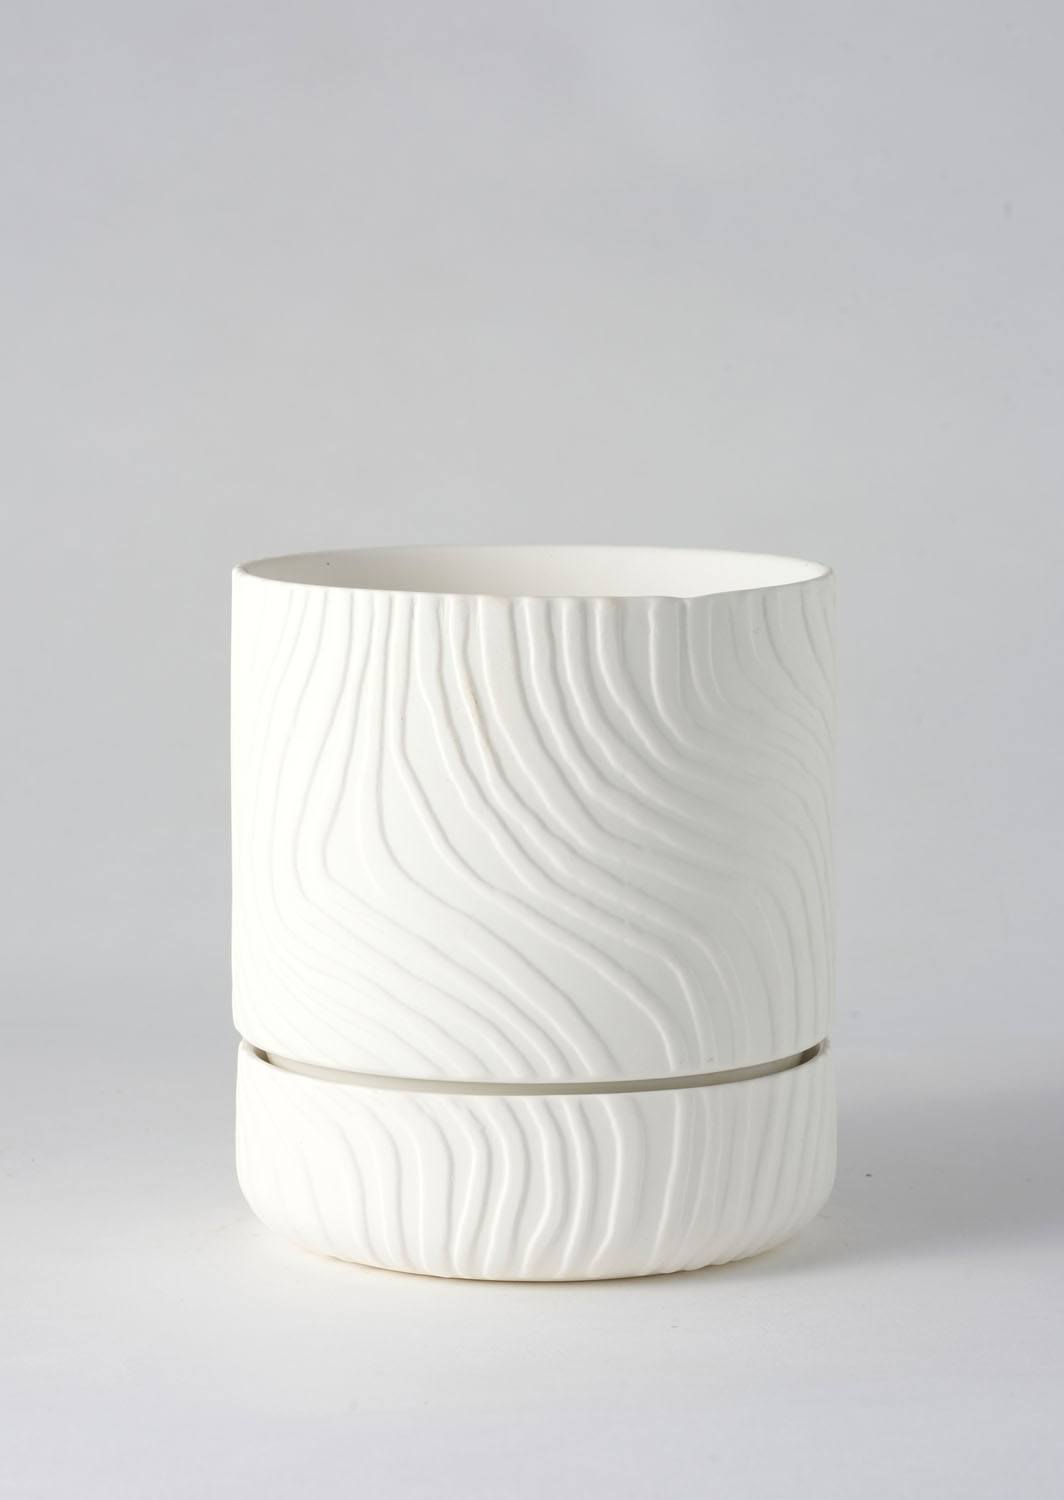 Angus & Celeste Abstract Relief Plant Pot - Brush Line Thin White